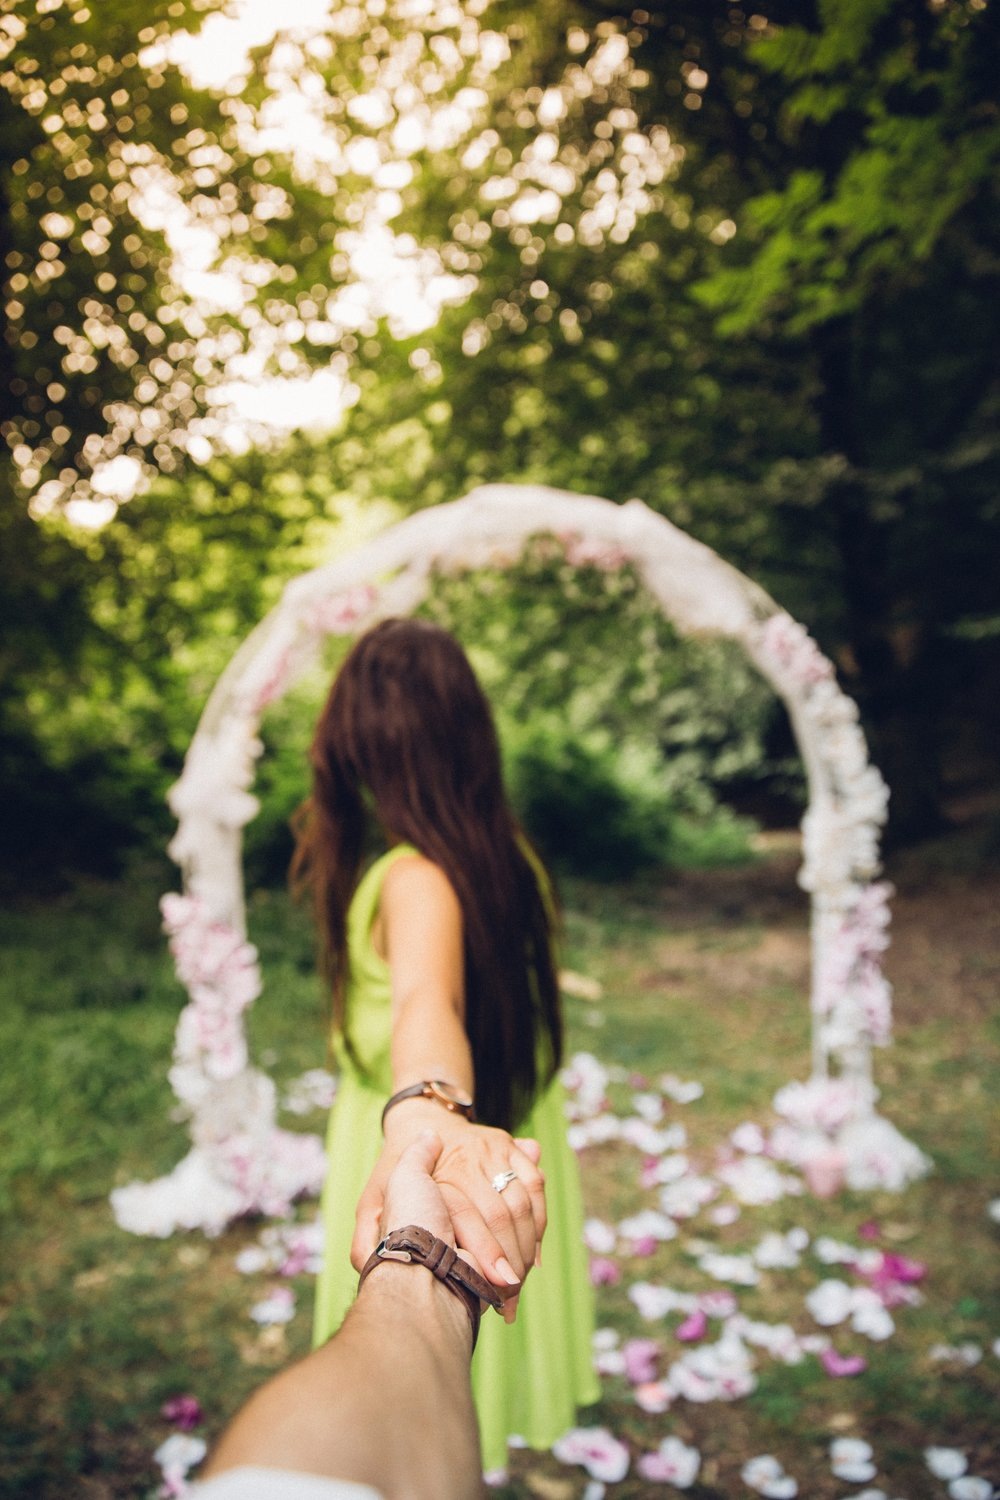 Photo courtesy of Alvin Mahmudov